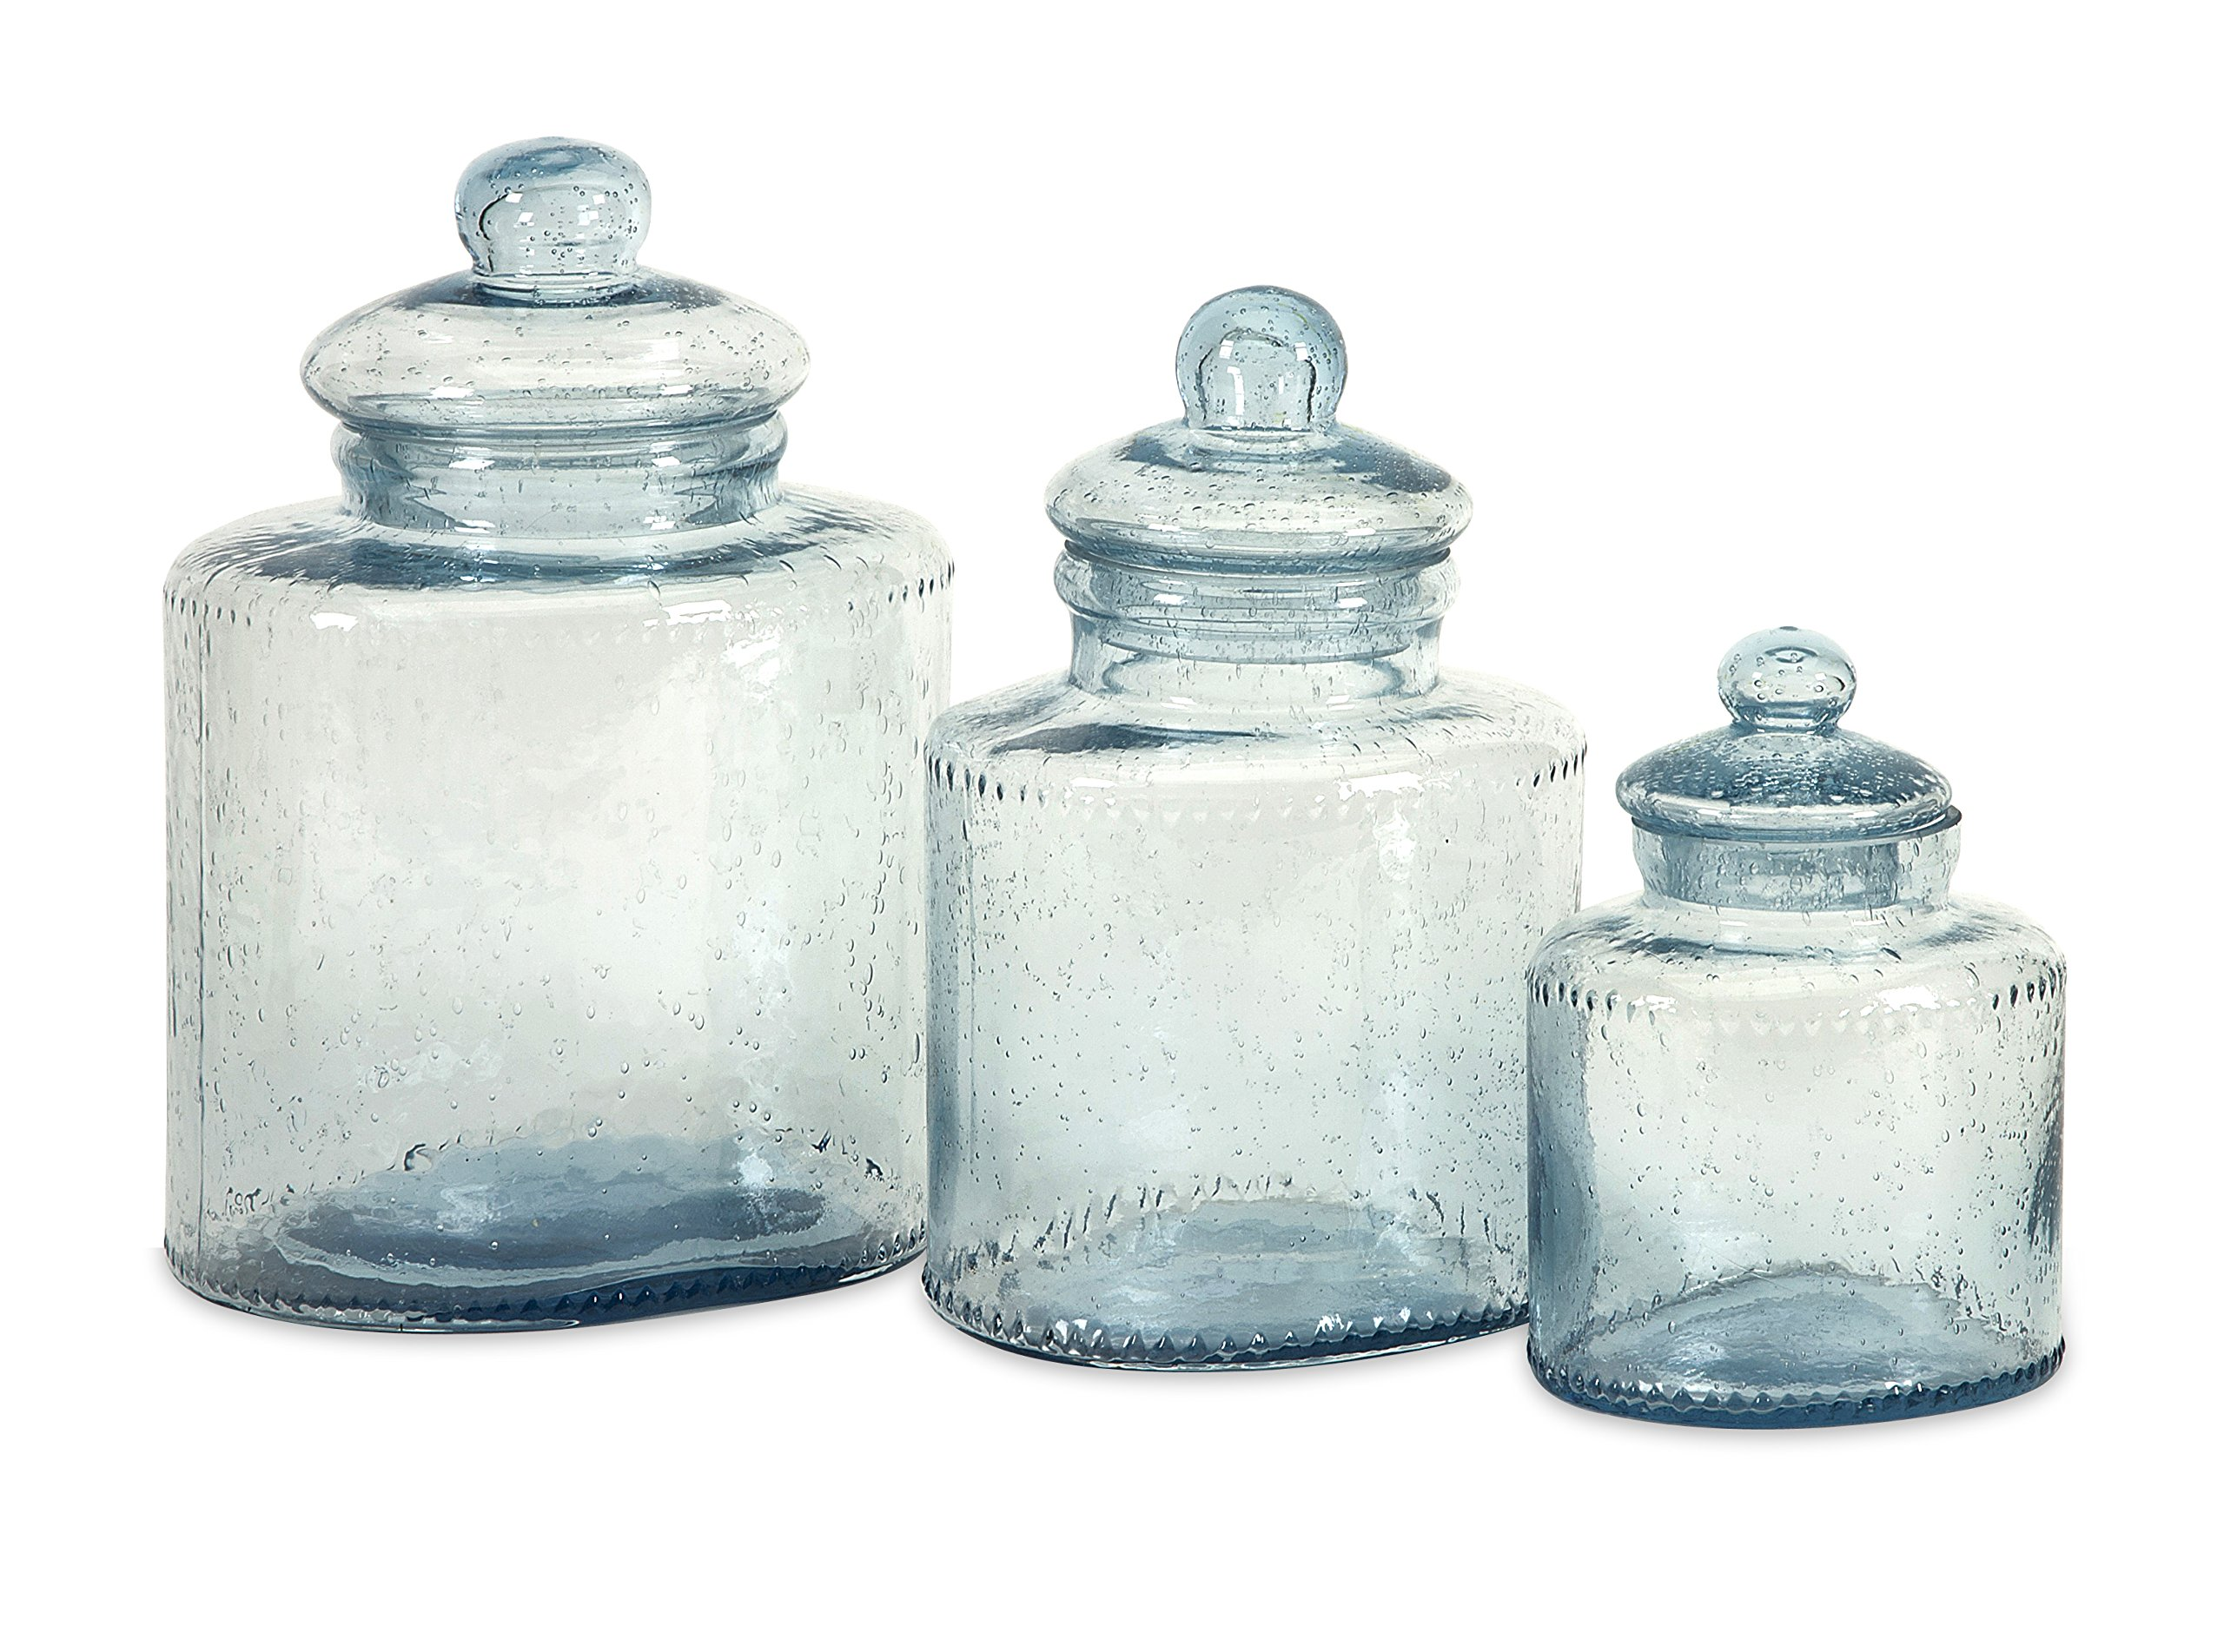 Imax 73217-3 Cyprus Glass Canister, Set of 3